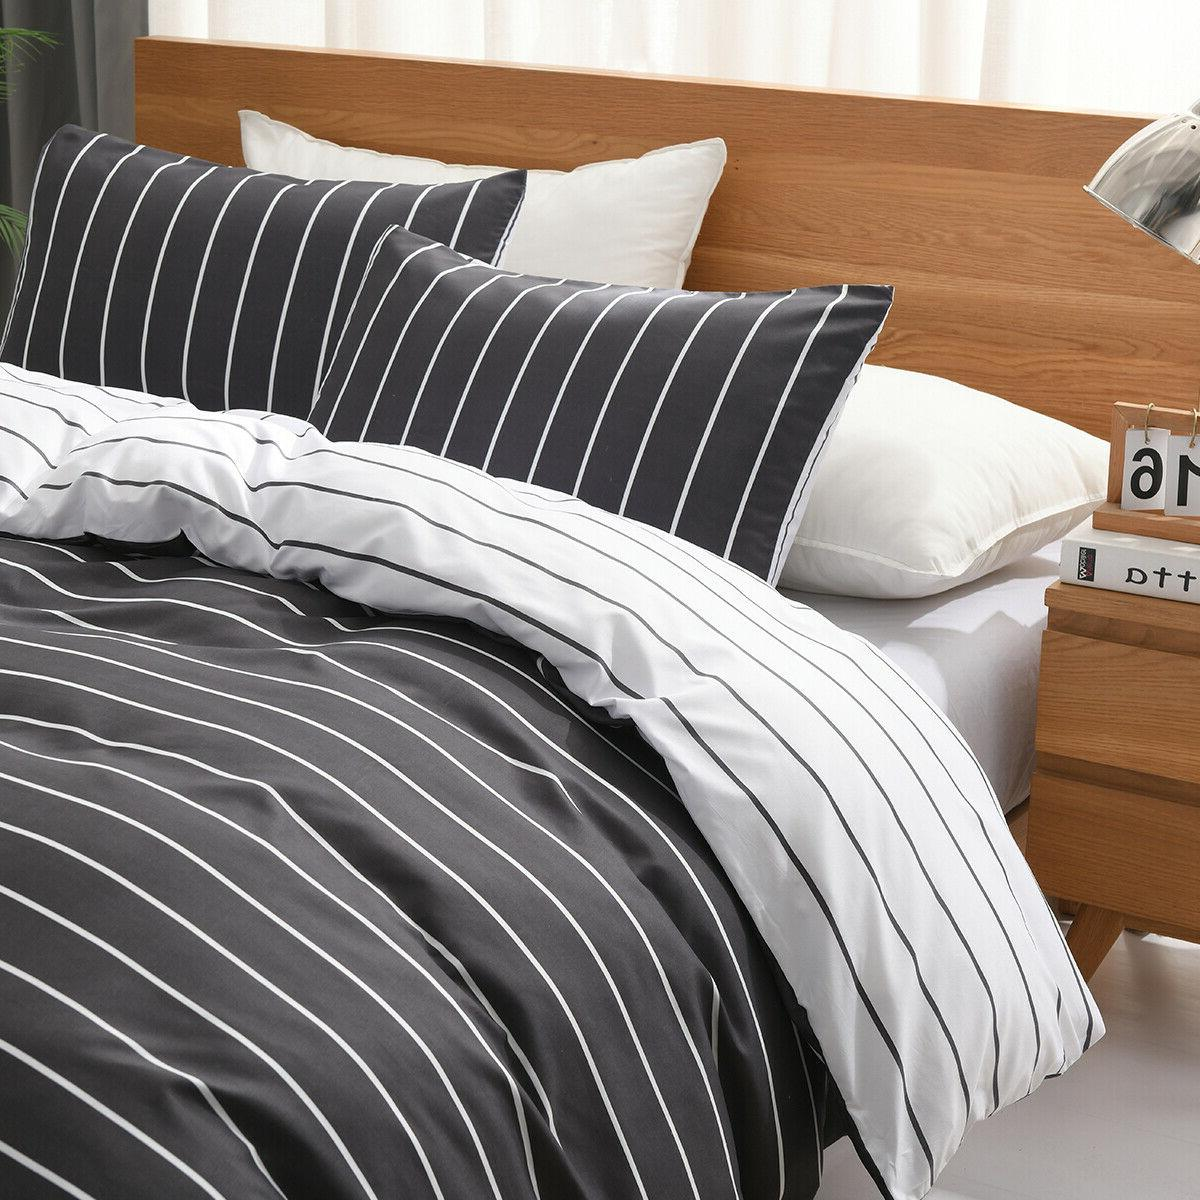 Striped Cover Sets Bedding Boys Kids Bed colours available